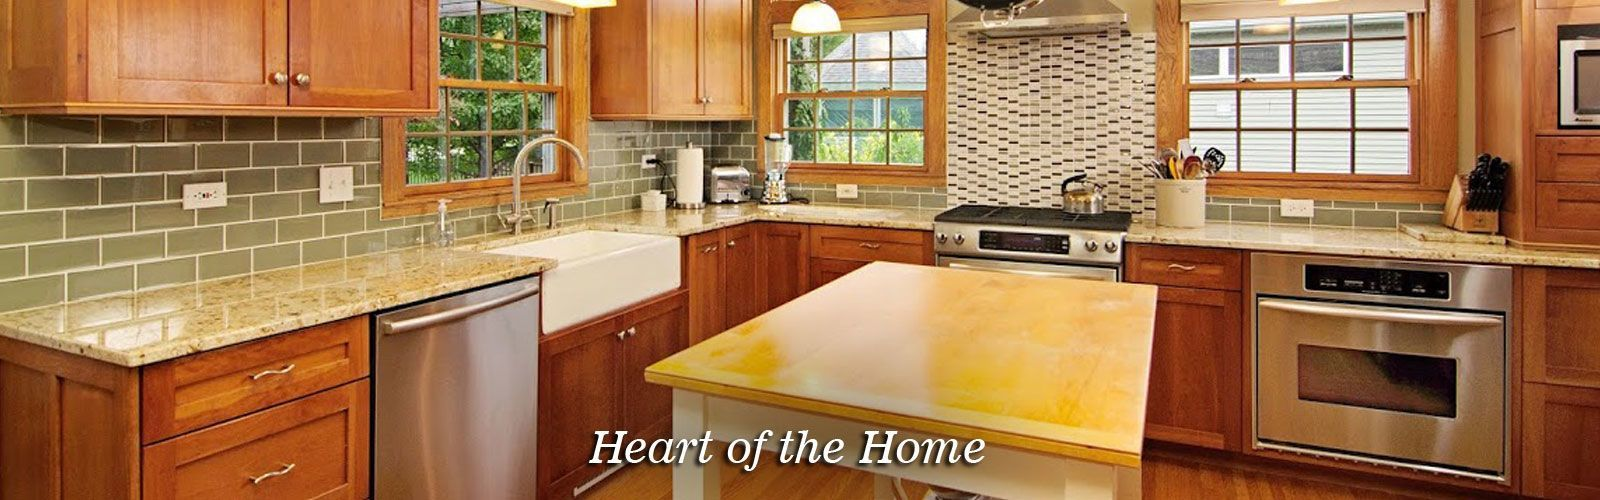 darien remodeling kitchen remodeling companies Best Home Renovations